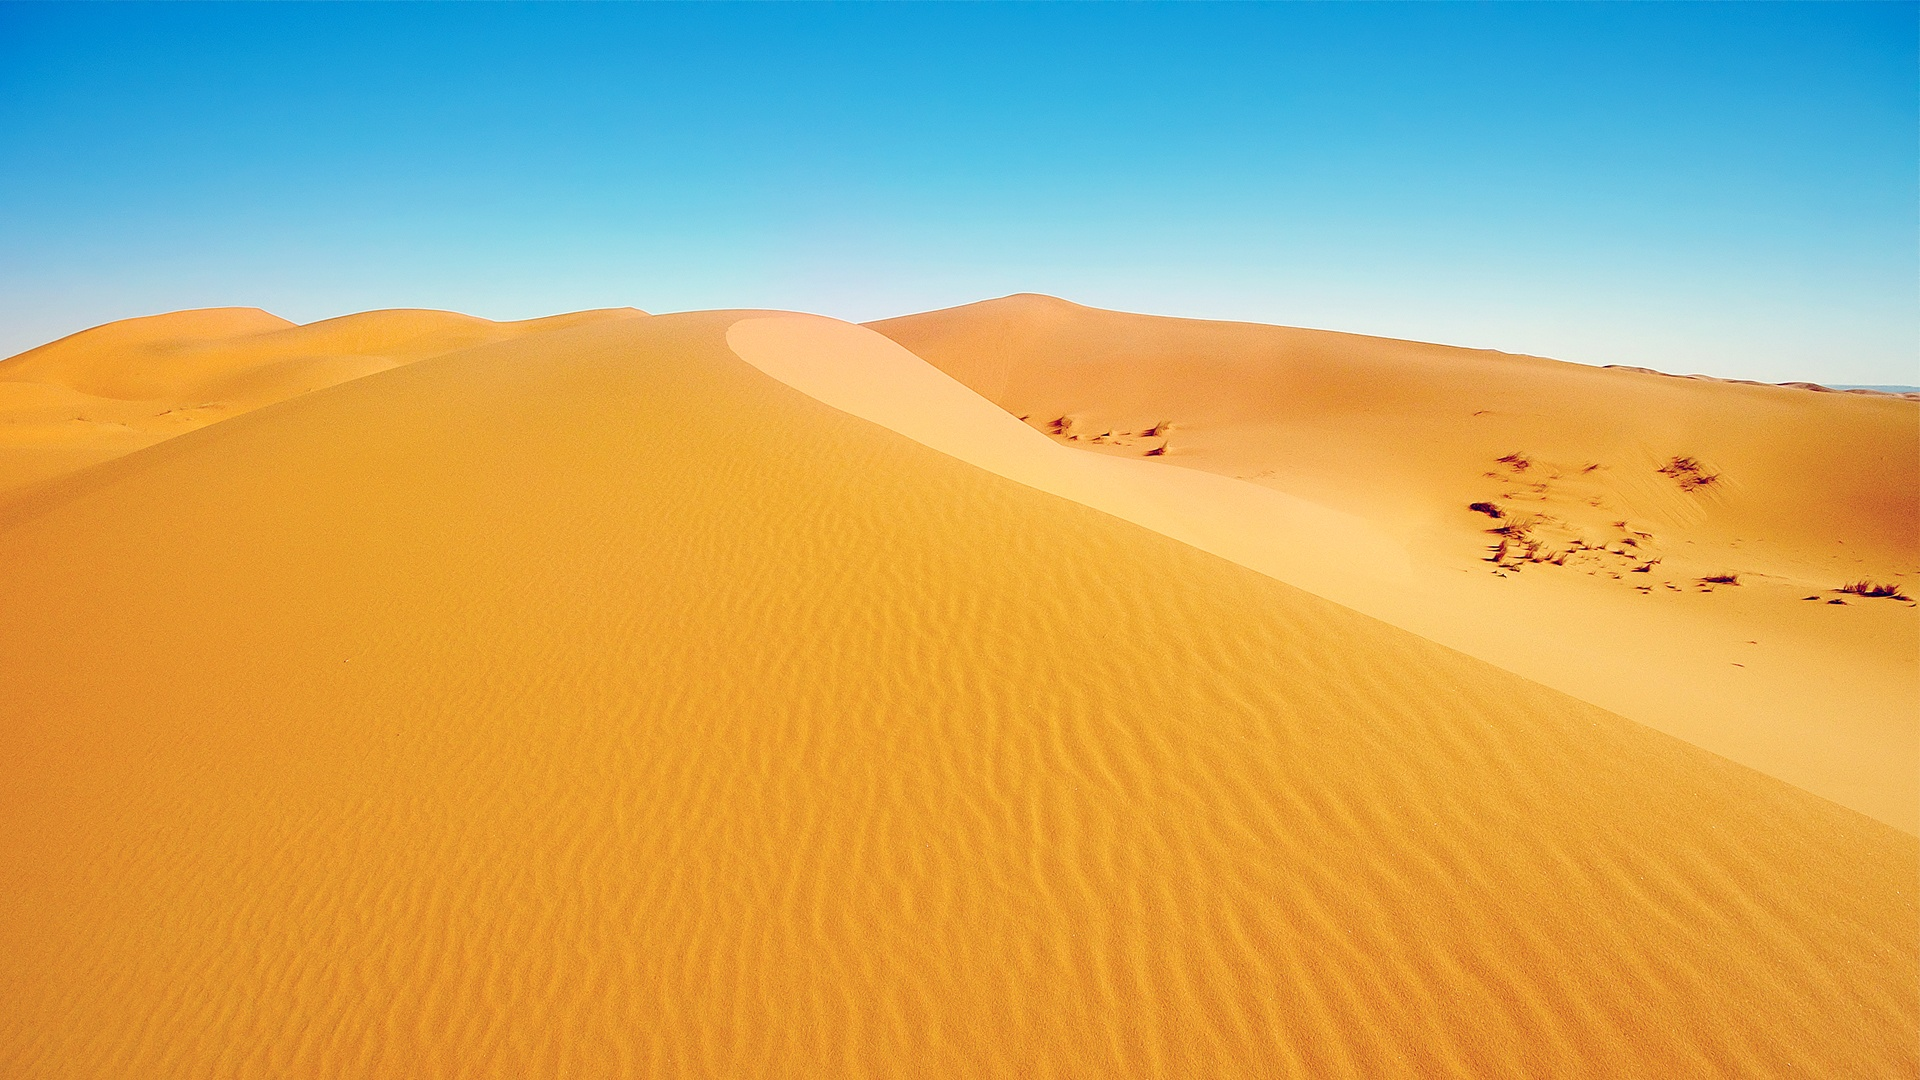 african desert wallpapers in jpg format for free download